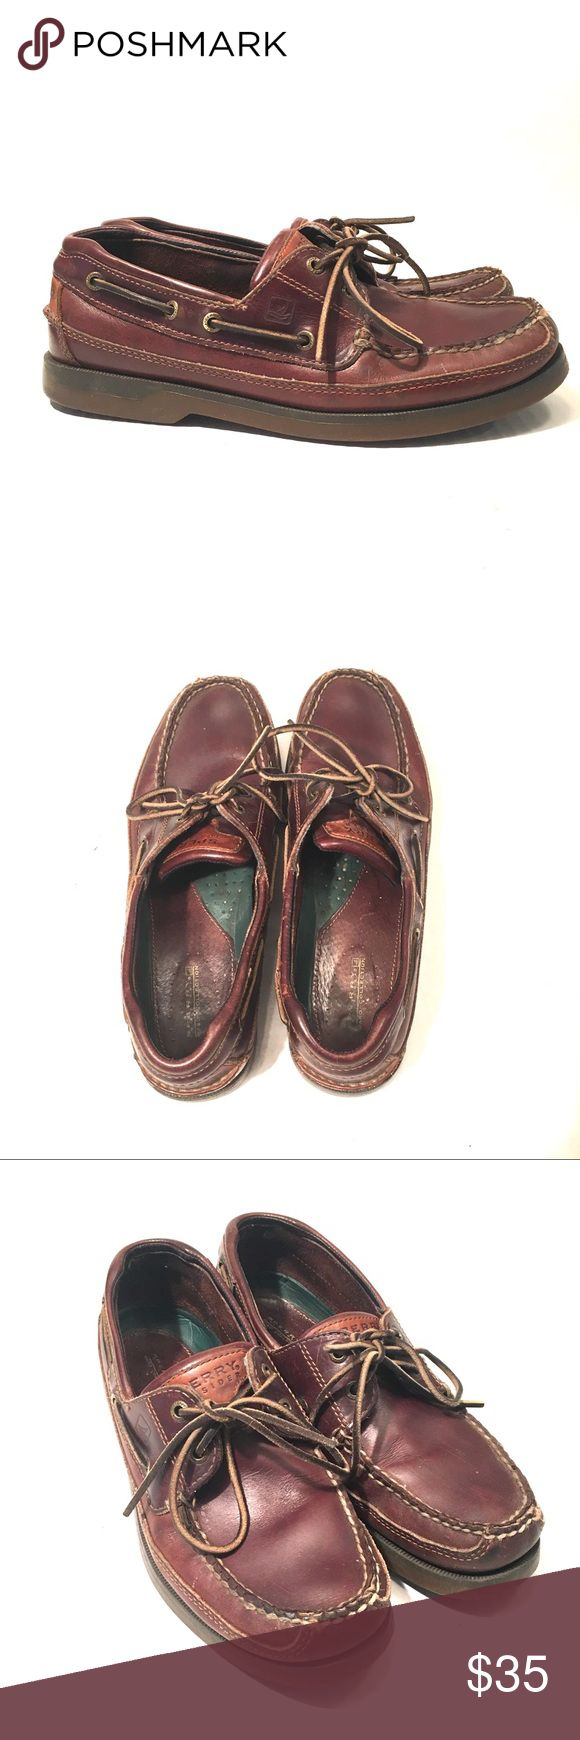 Sperry Top Sider Men Boat Shoes Brown Leather Two Eye Boat Shoes  Great pre Owned condition Buy with confidence  Size 9.5 Med Sperry Top-Sider Shoes Boat Shoes